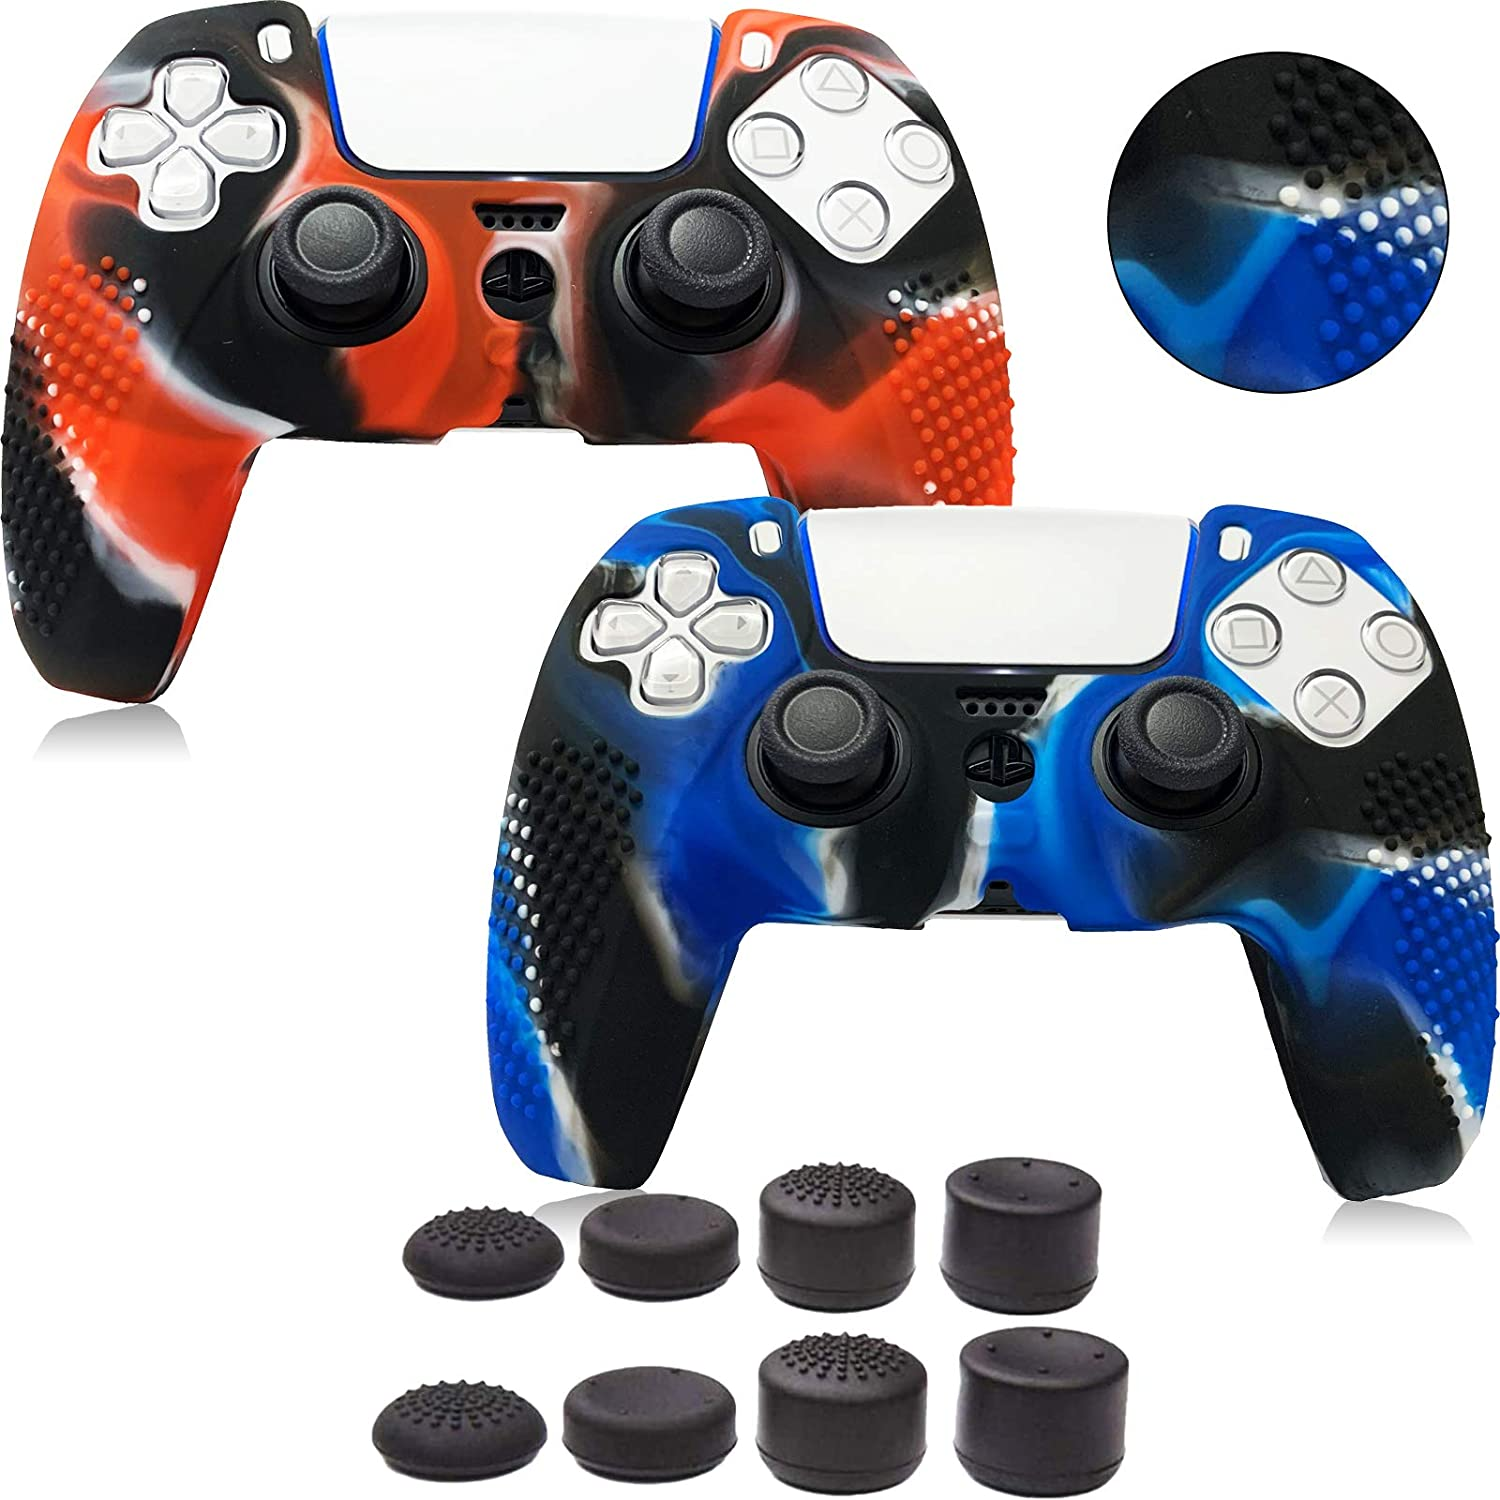 2 Pack PS5 DualSense Controller Skins, Texture Pattern Cover for